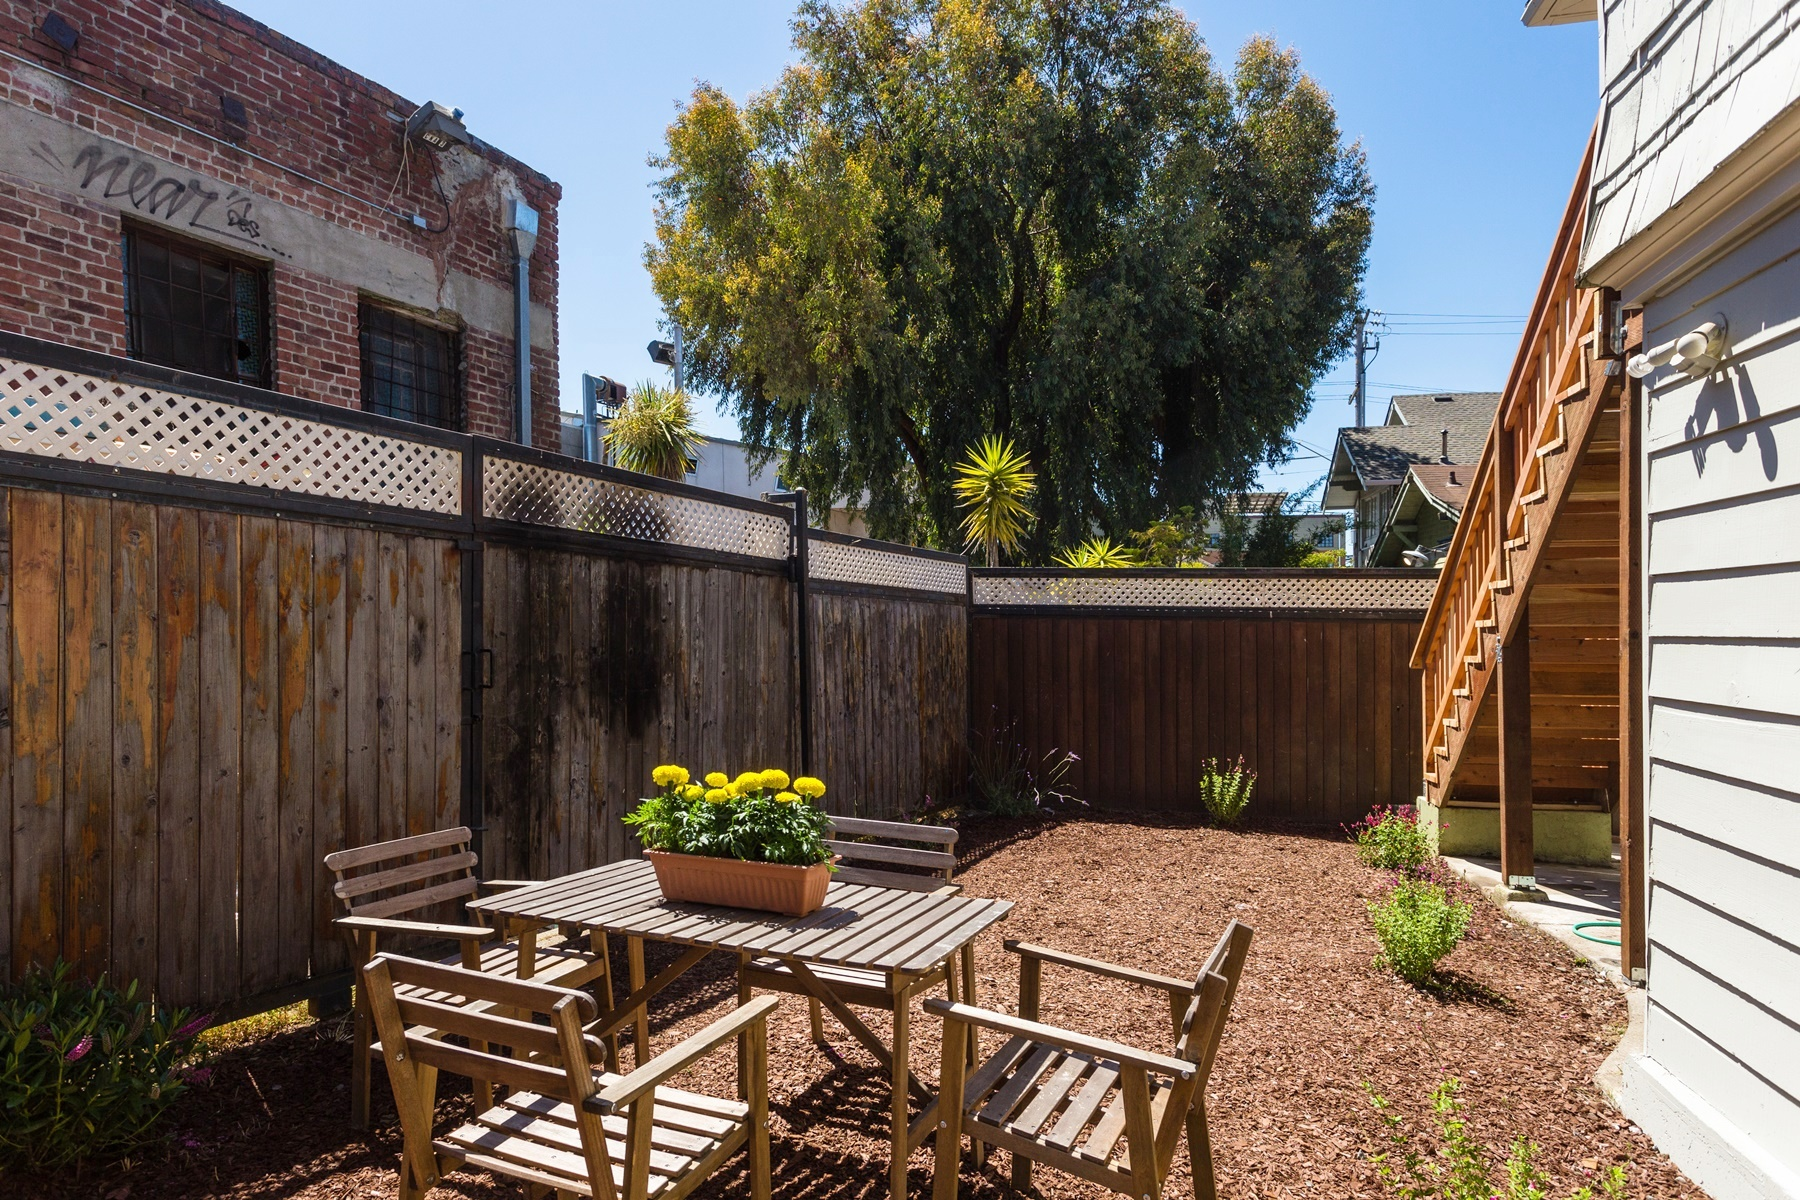 Additional photo for property listing at Charming And Sunny Duplex 2535 Chilton Way Berkeley, California 94707 Estados Unidos